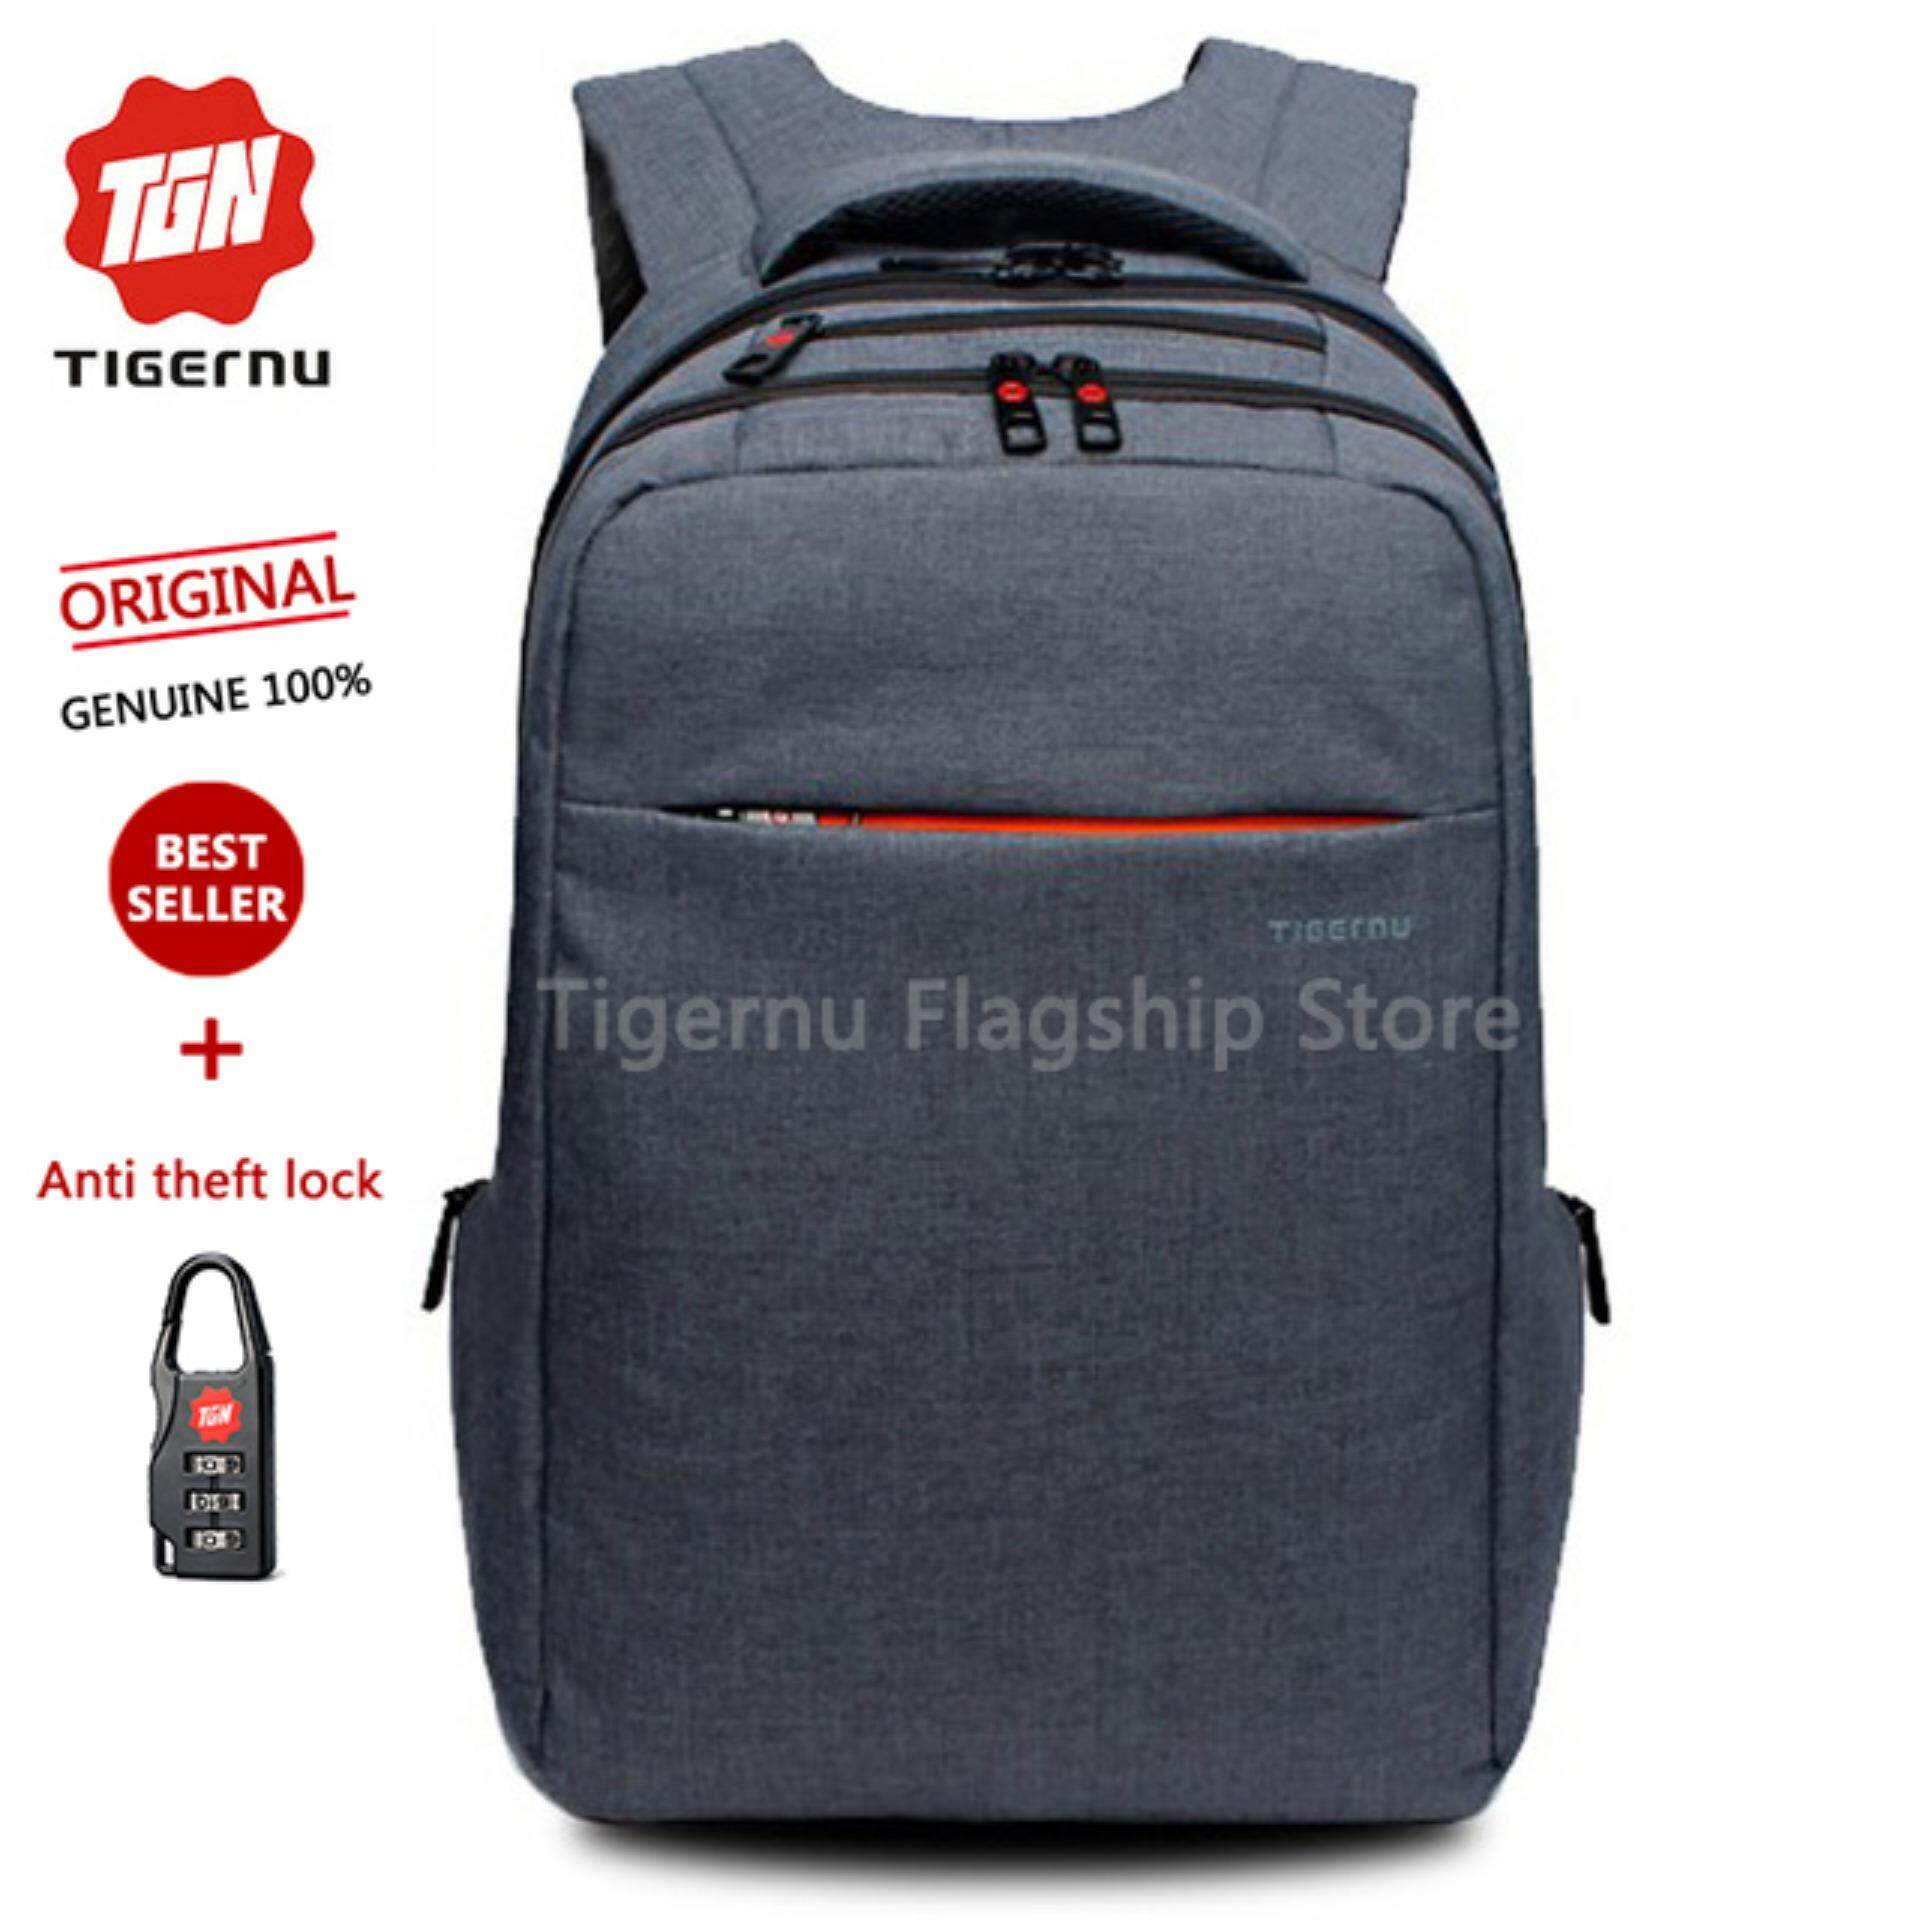 Tigernu Popular 15inch laptop Backpack For 12-15.6 inches Notebook  Multifunction Travel Backpack T- 4a96373e1a4a8